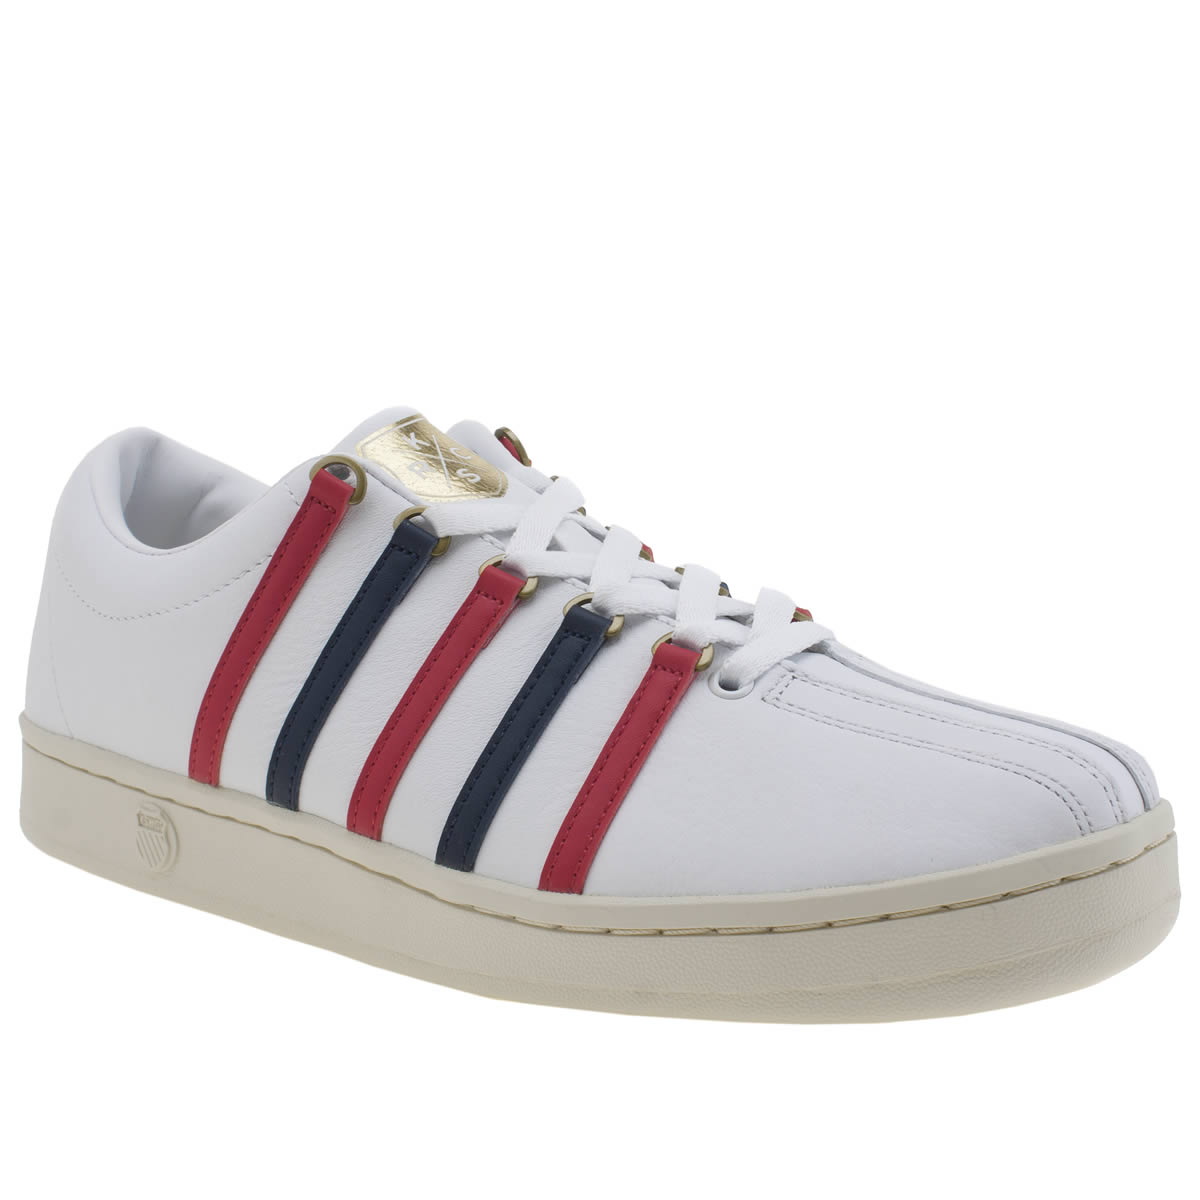 K-SWISS K-swiss White & Red Classic 88 Aged Trainers